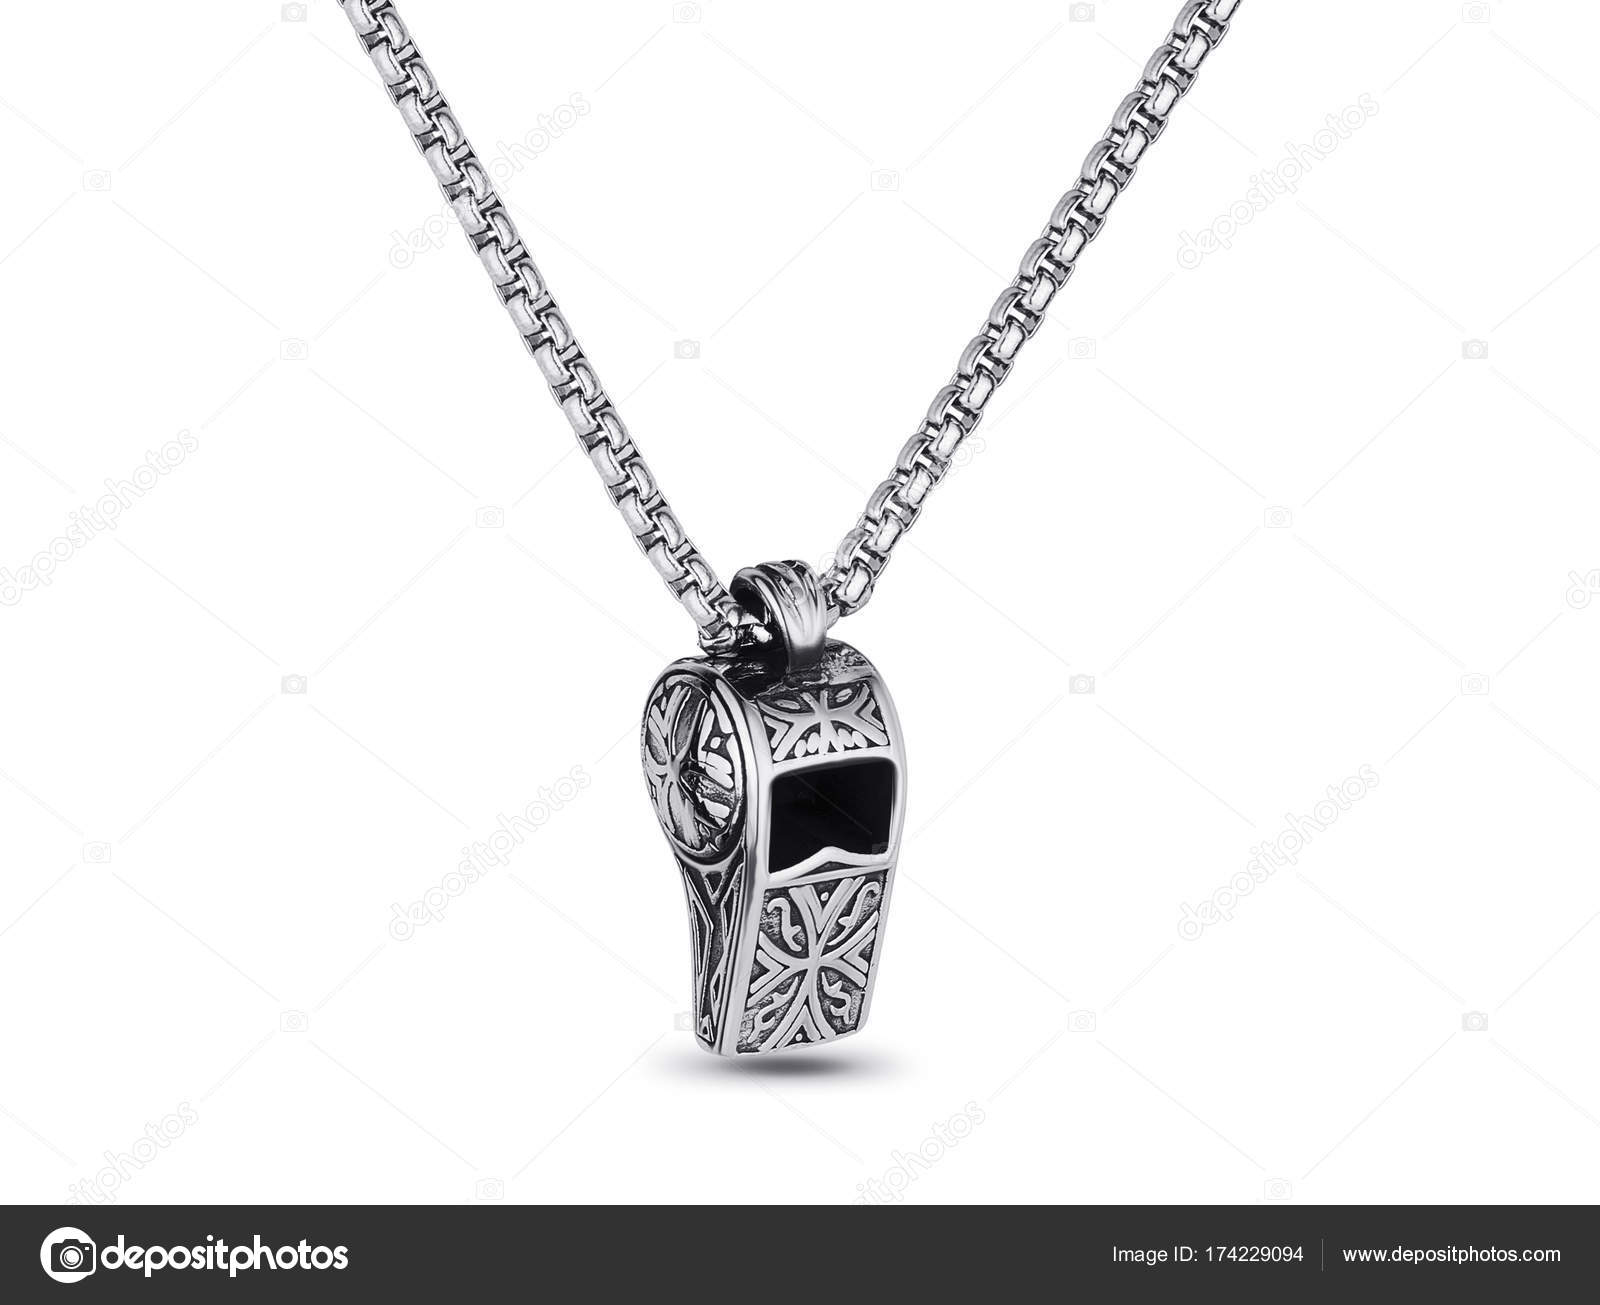 crystal cc necklace pendant whistle chanel